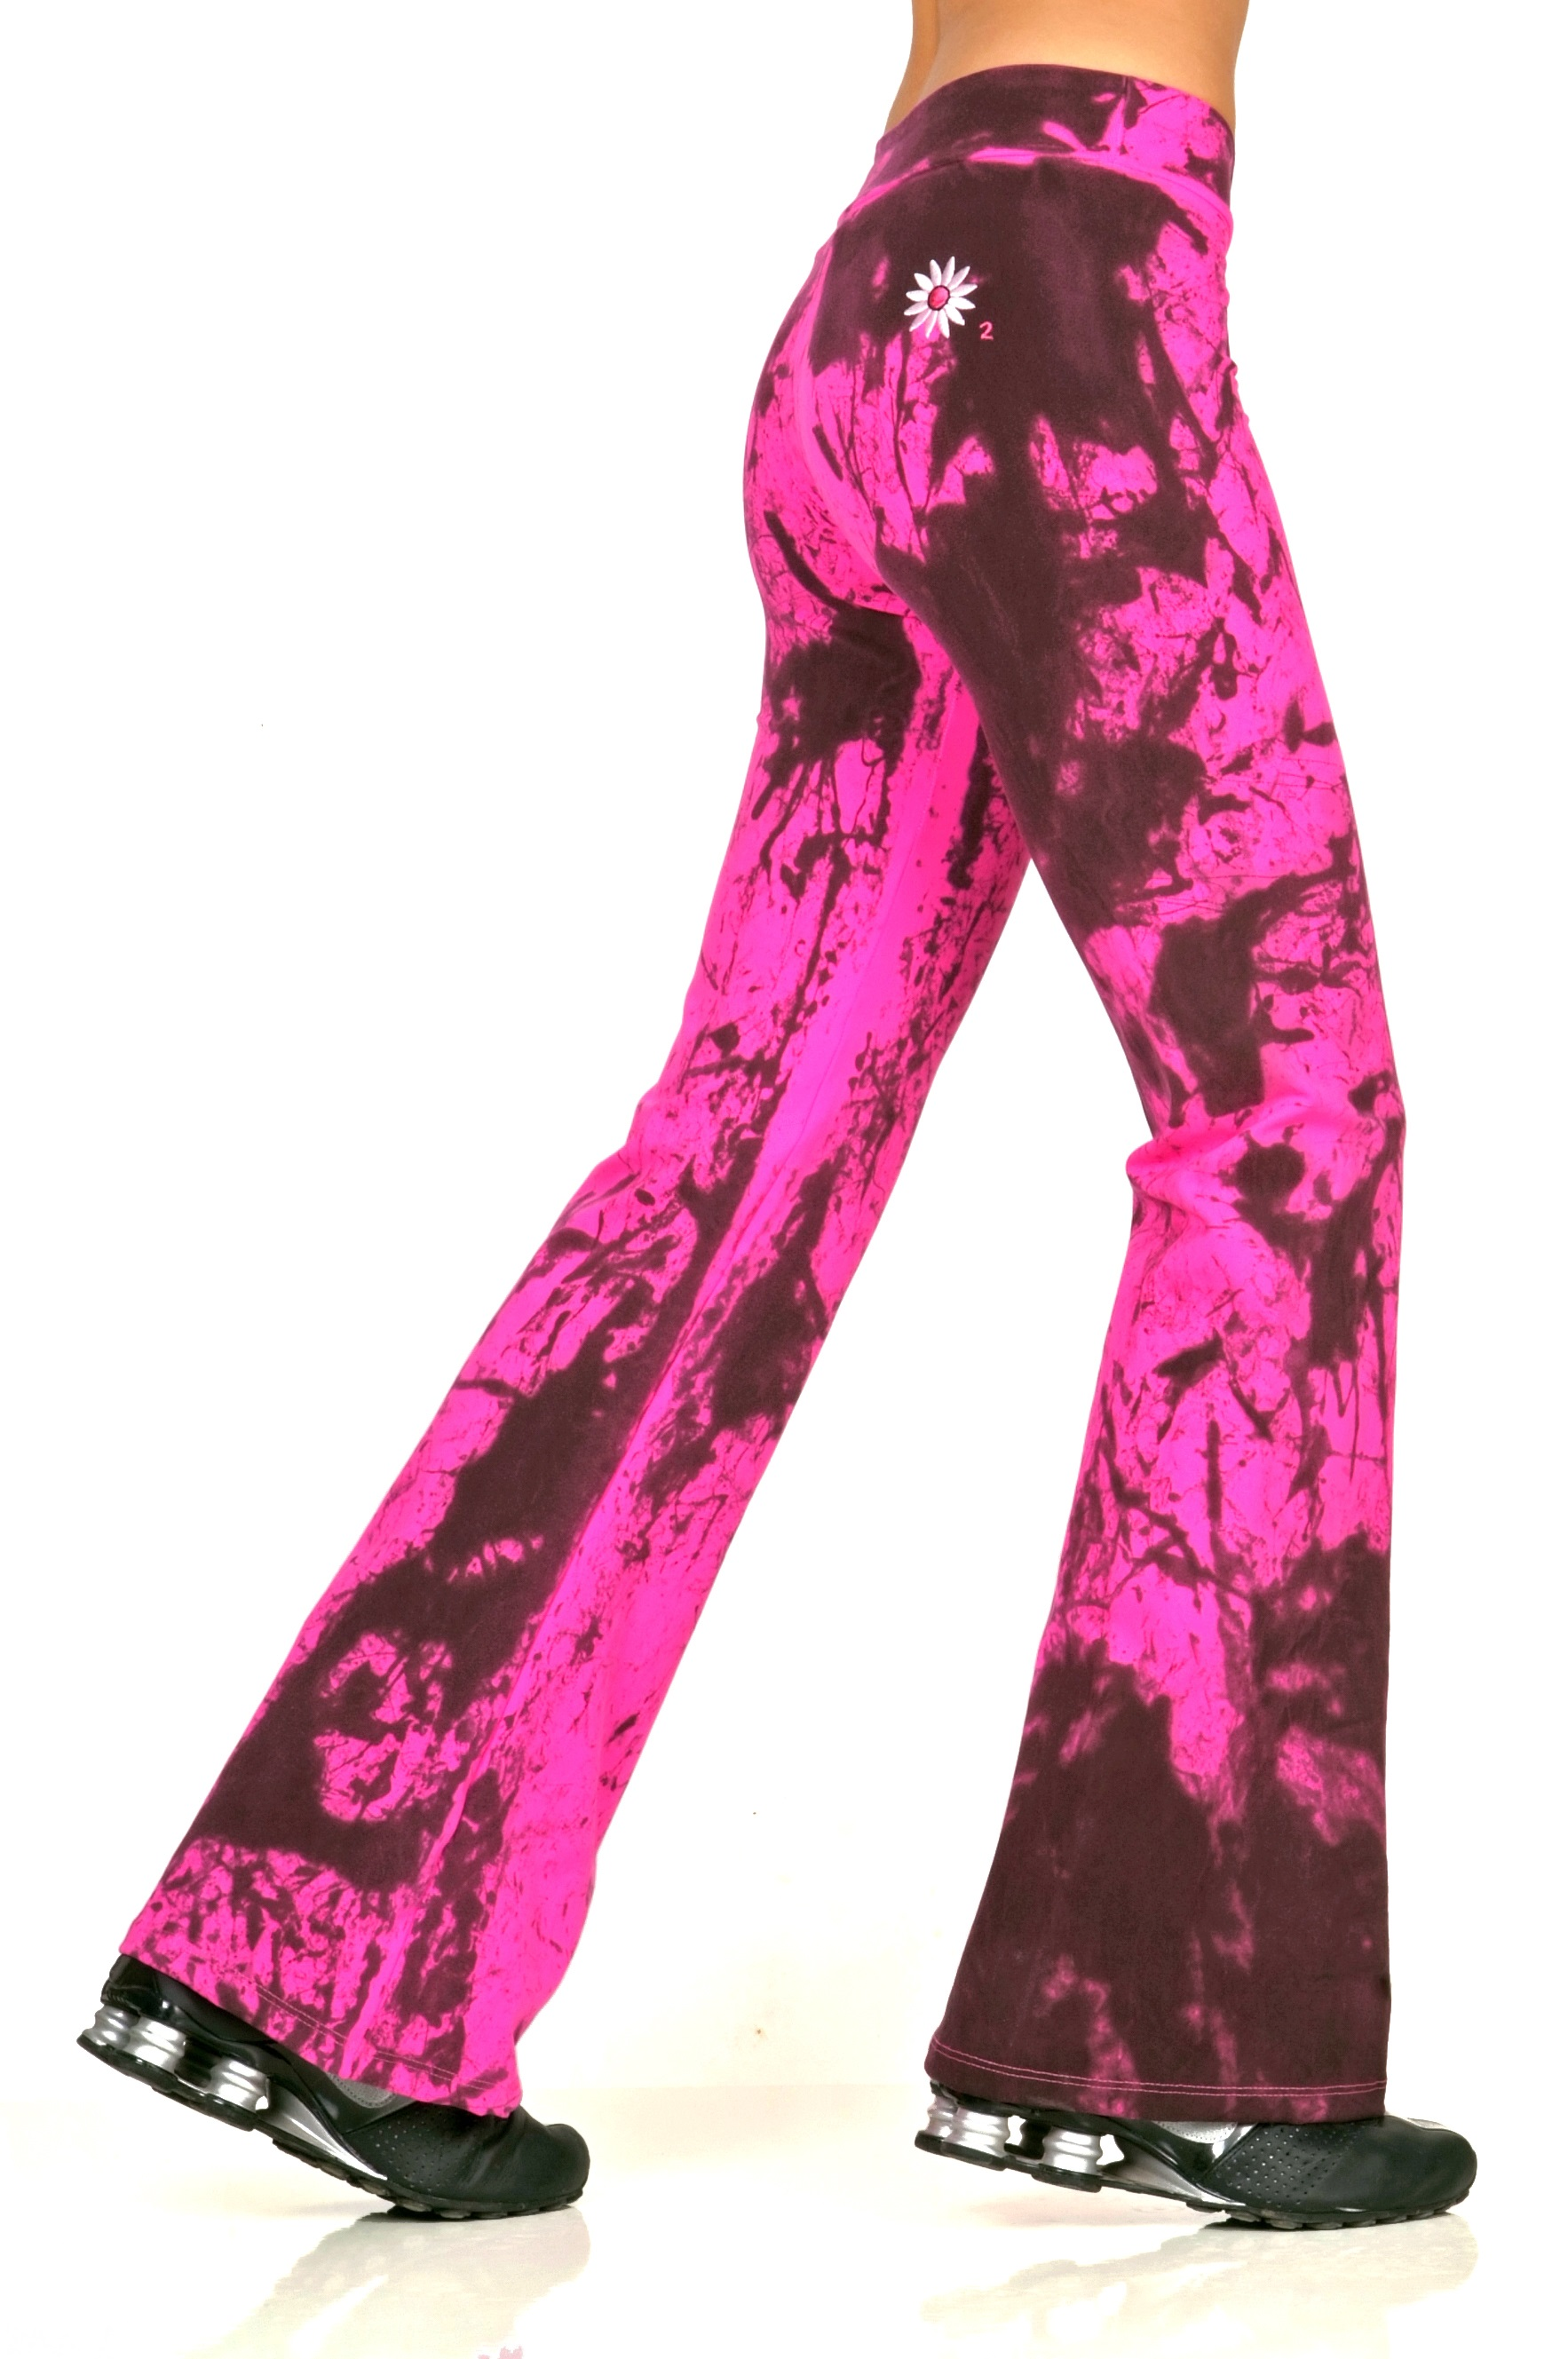 51161-fluorescent PINK : image 2